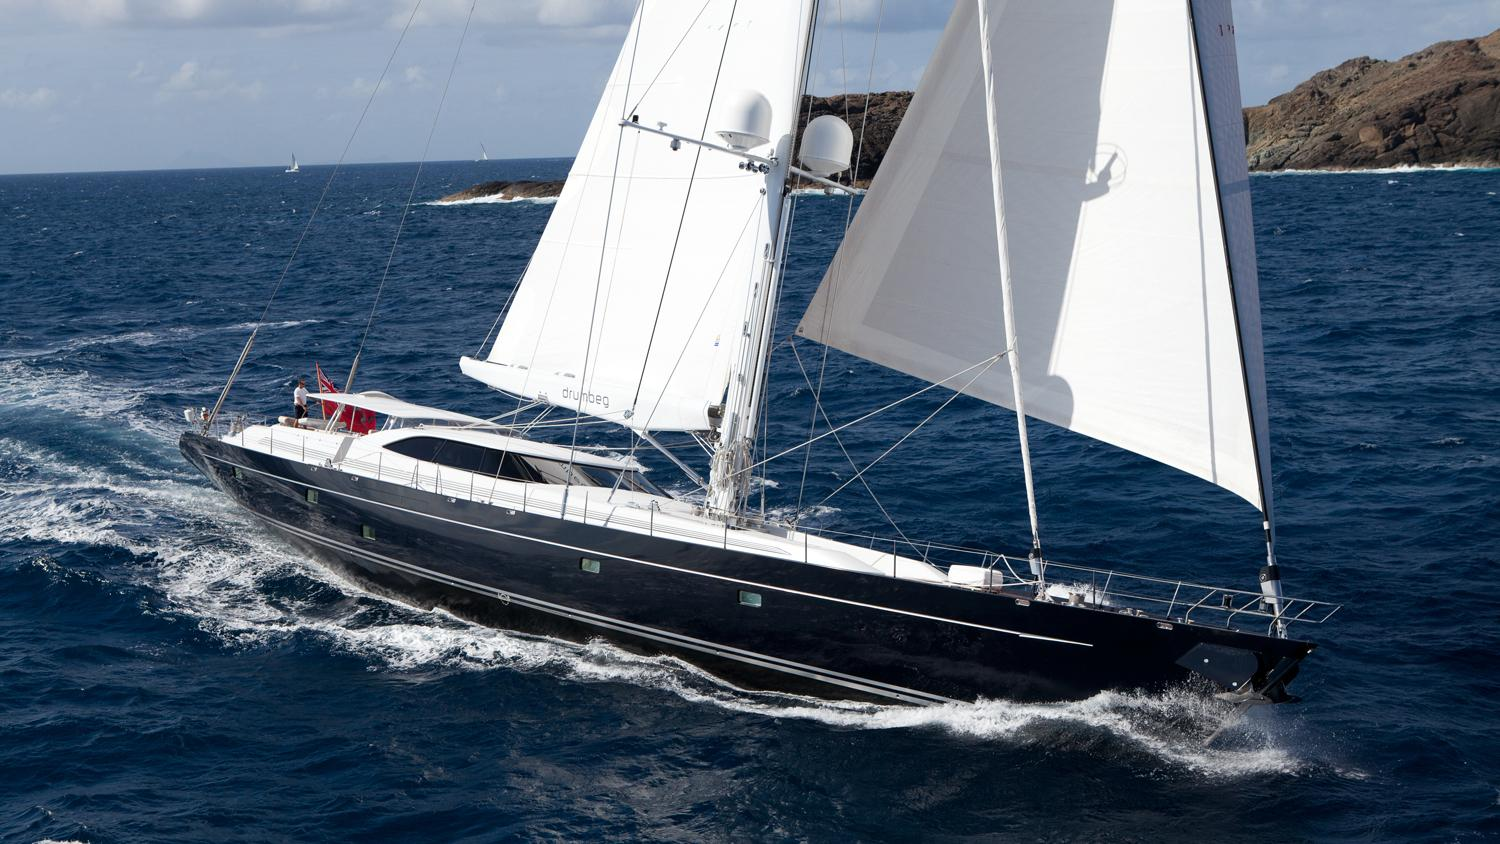 drumbeg-yacht-for-sale-profile